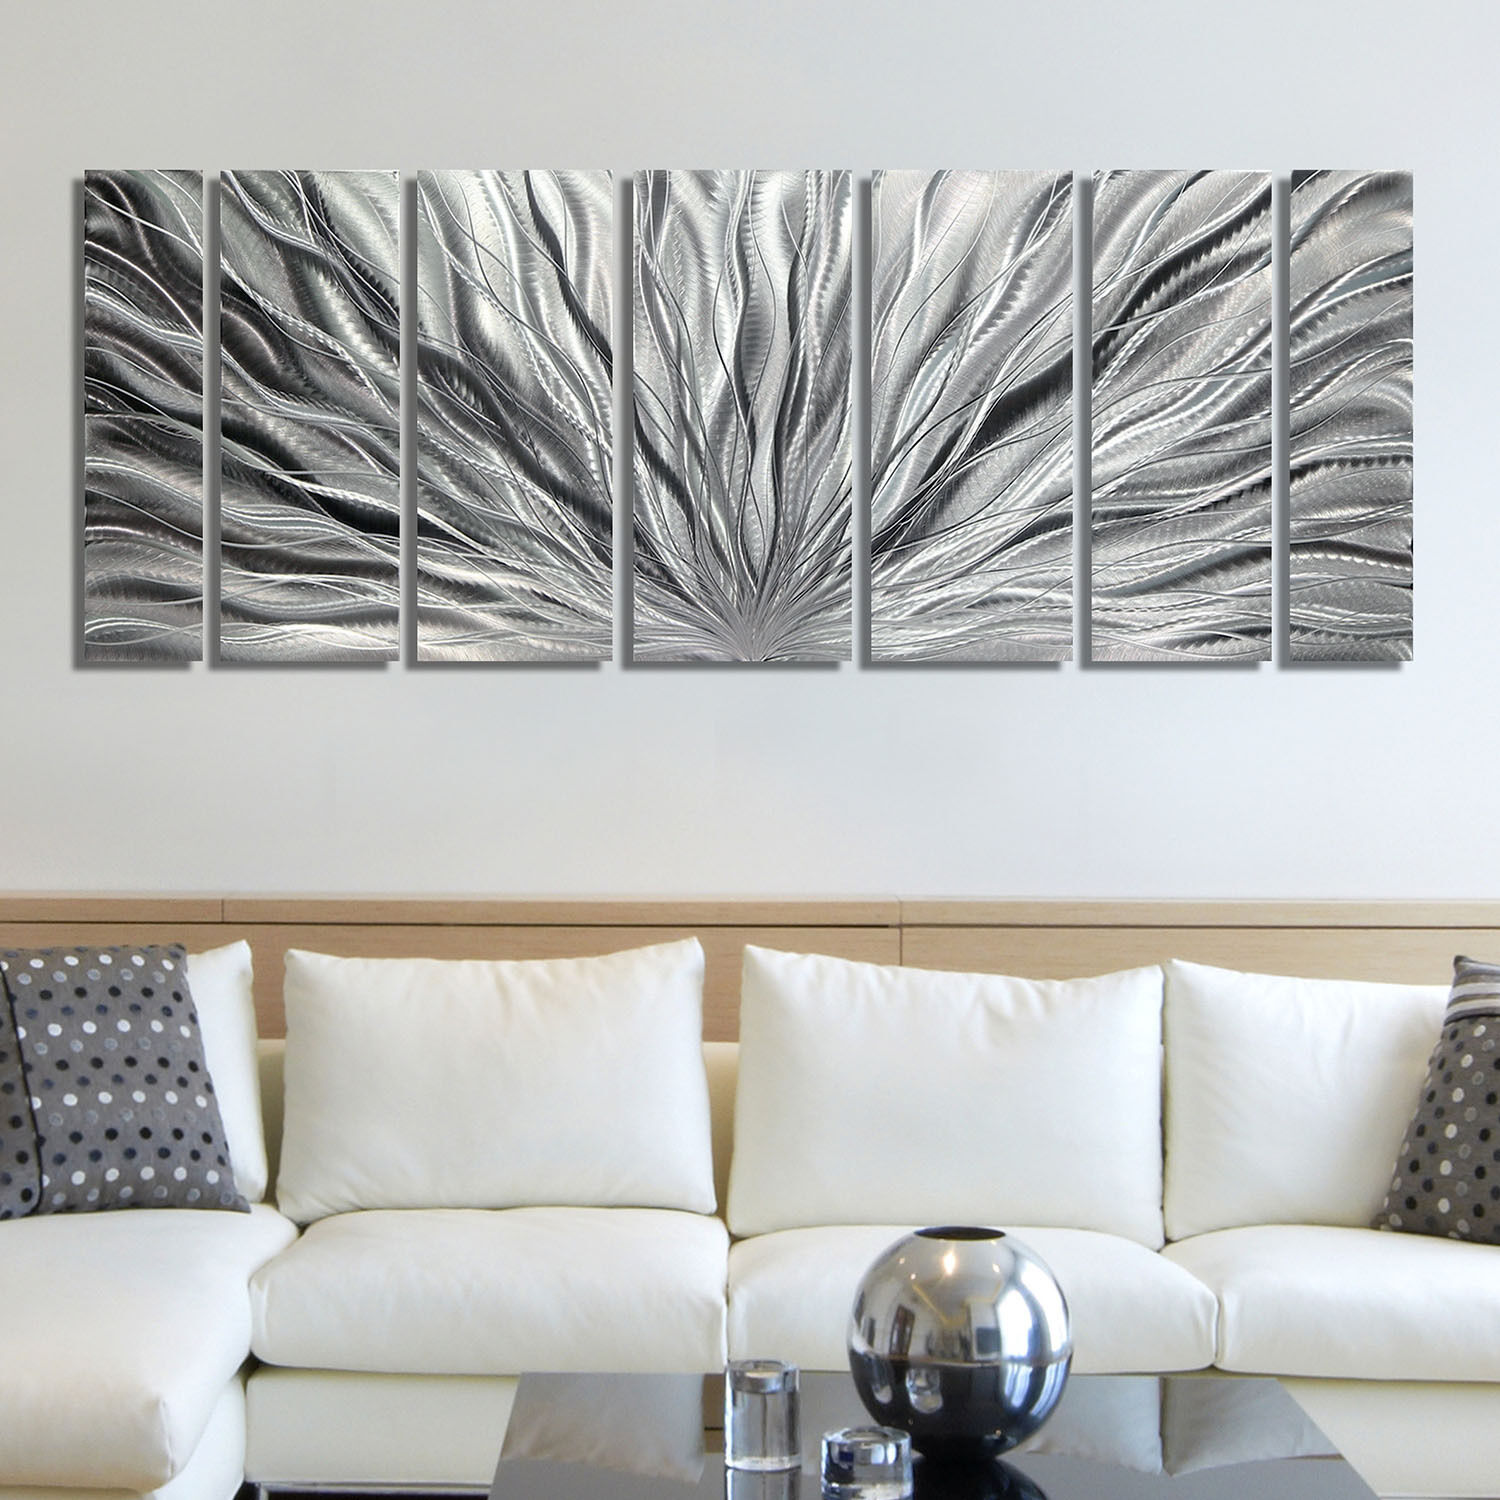 Modern Metal Wall Art, Abstract Wall Sculpture, Silver Home Decor by Jon Allen